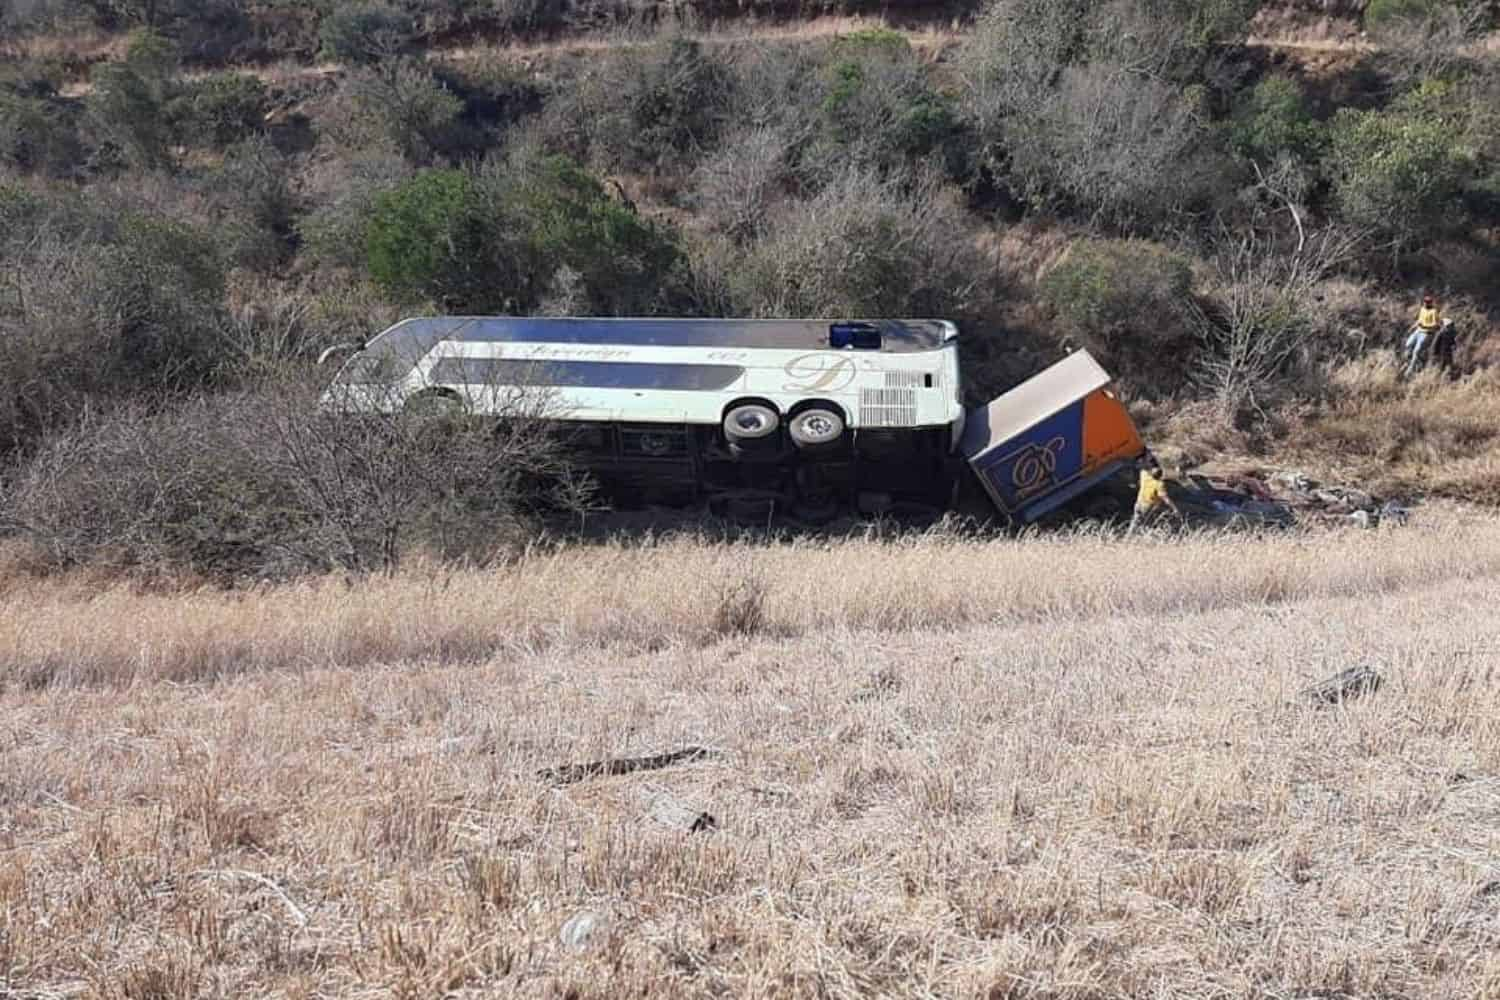 18 feared dead after Eastern Cape bus crash